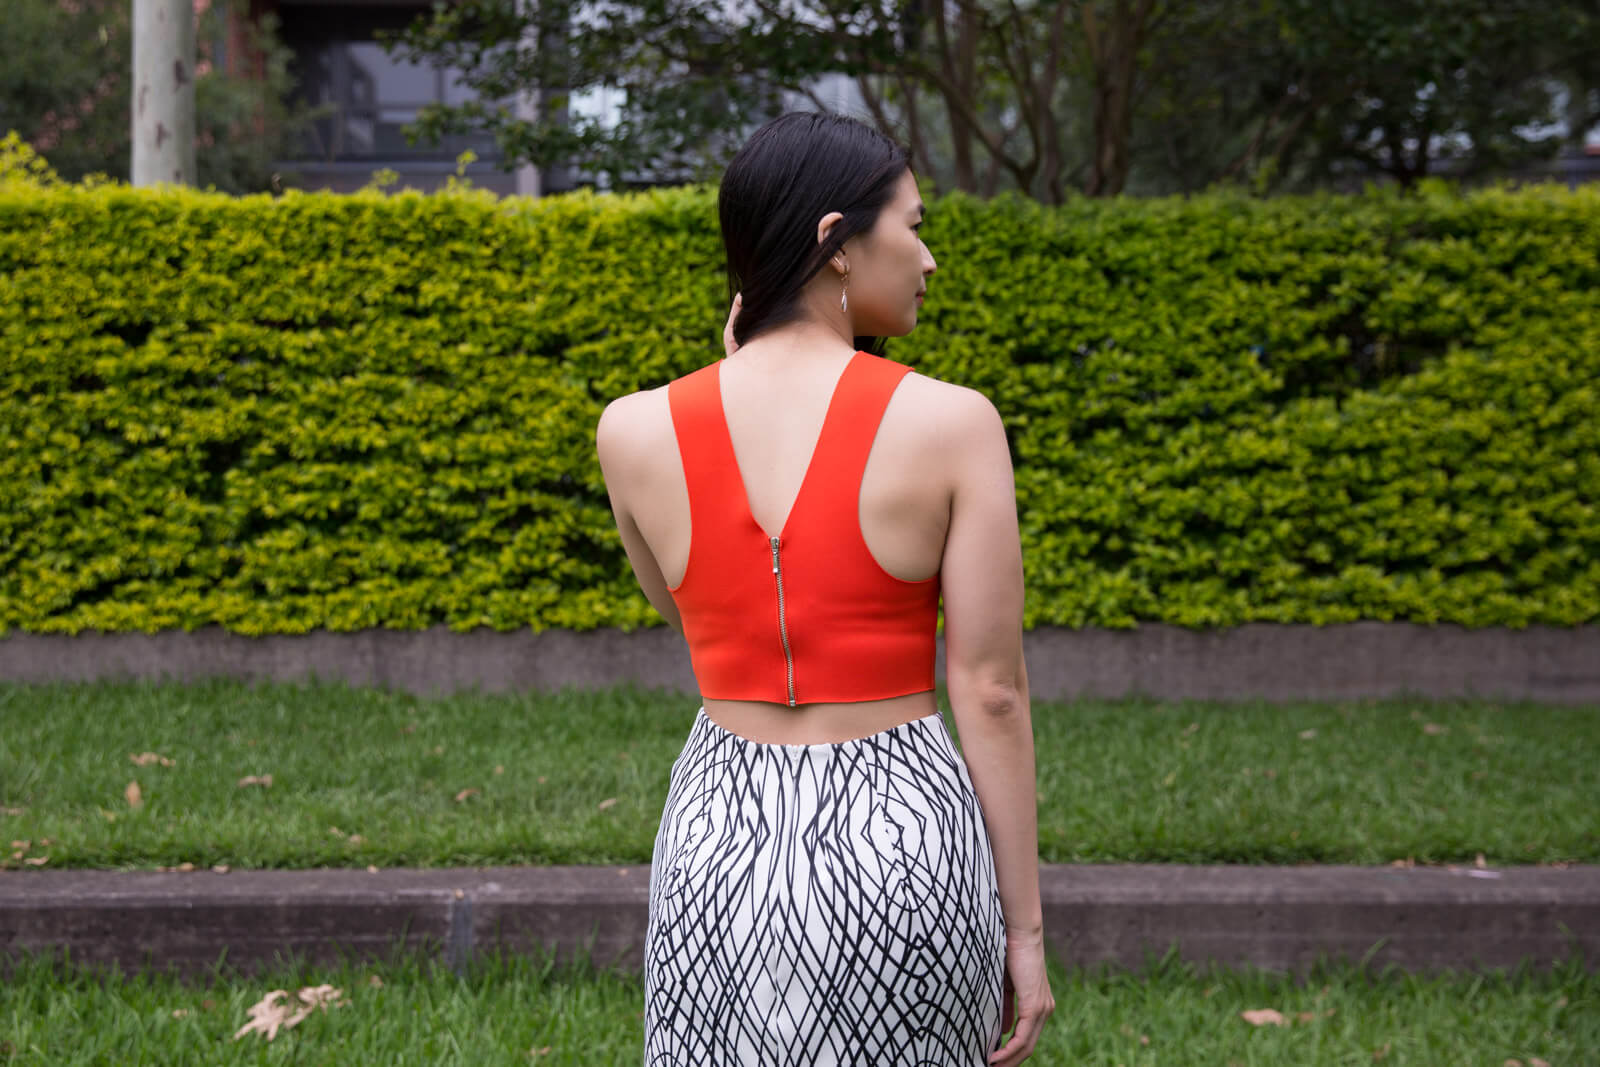 The same woman from other photos in this post, from the back, showing the back of her sleeveless top